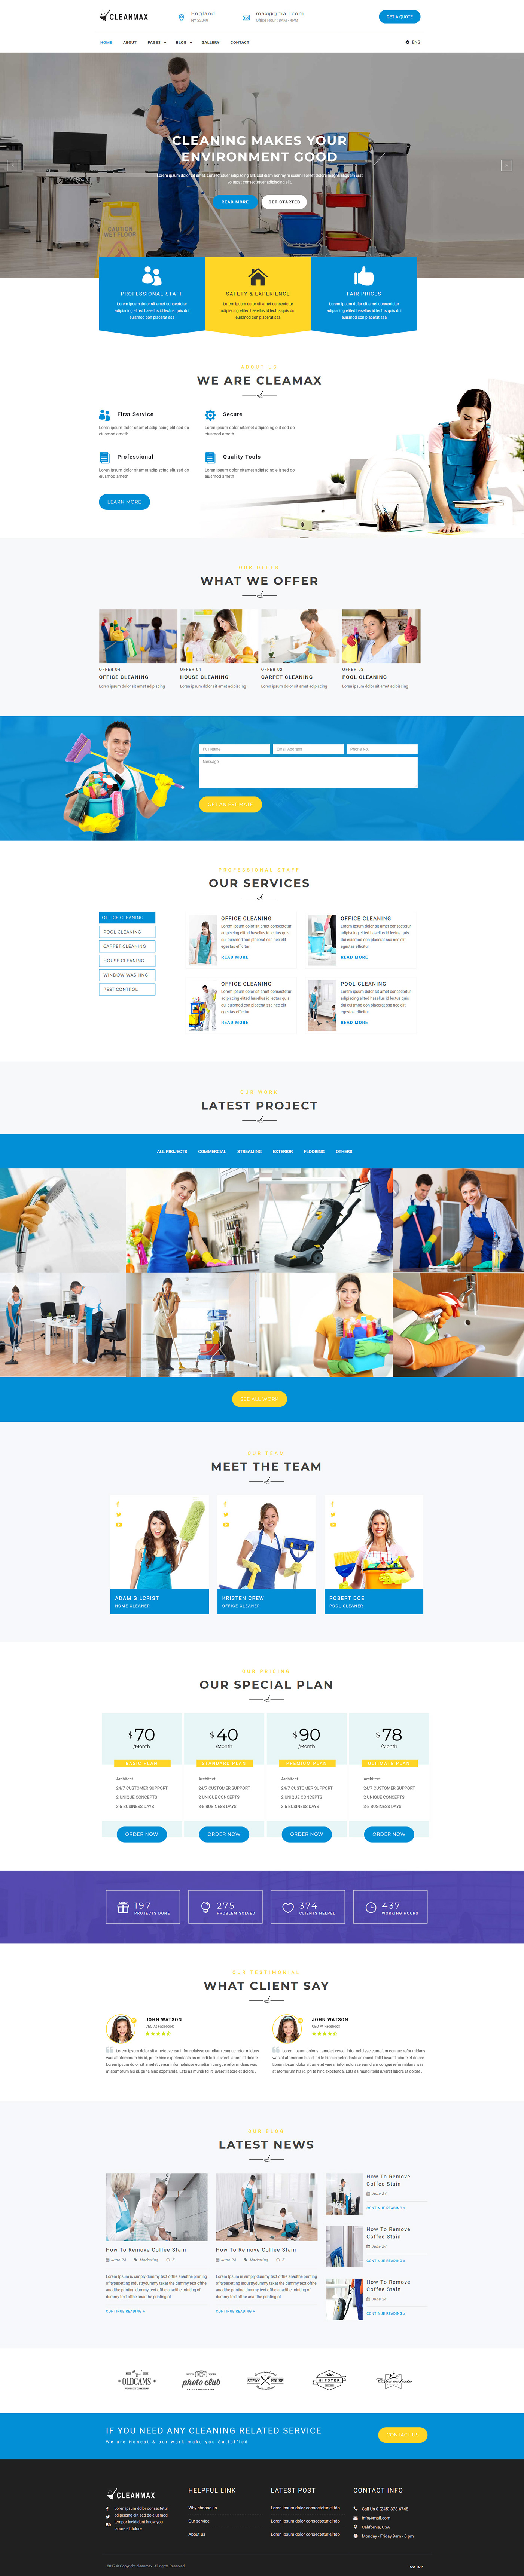 CleanMax- Cleaning Company Responsive Template - 1